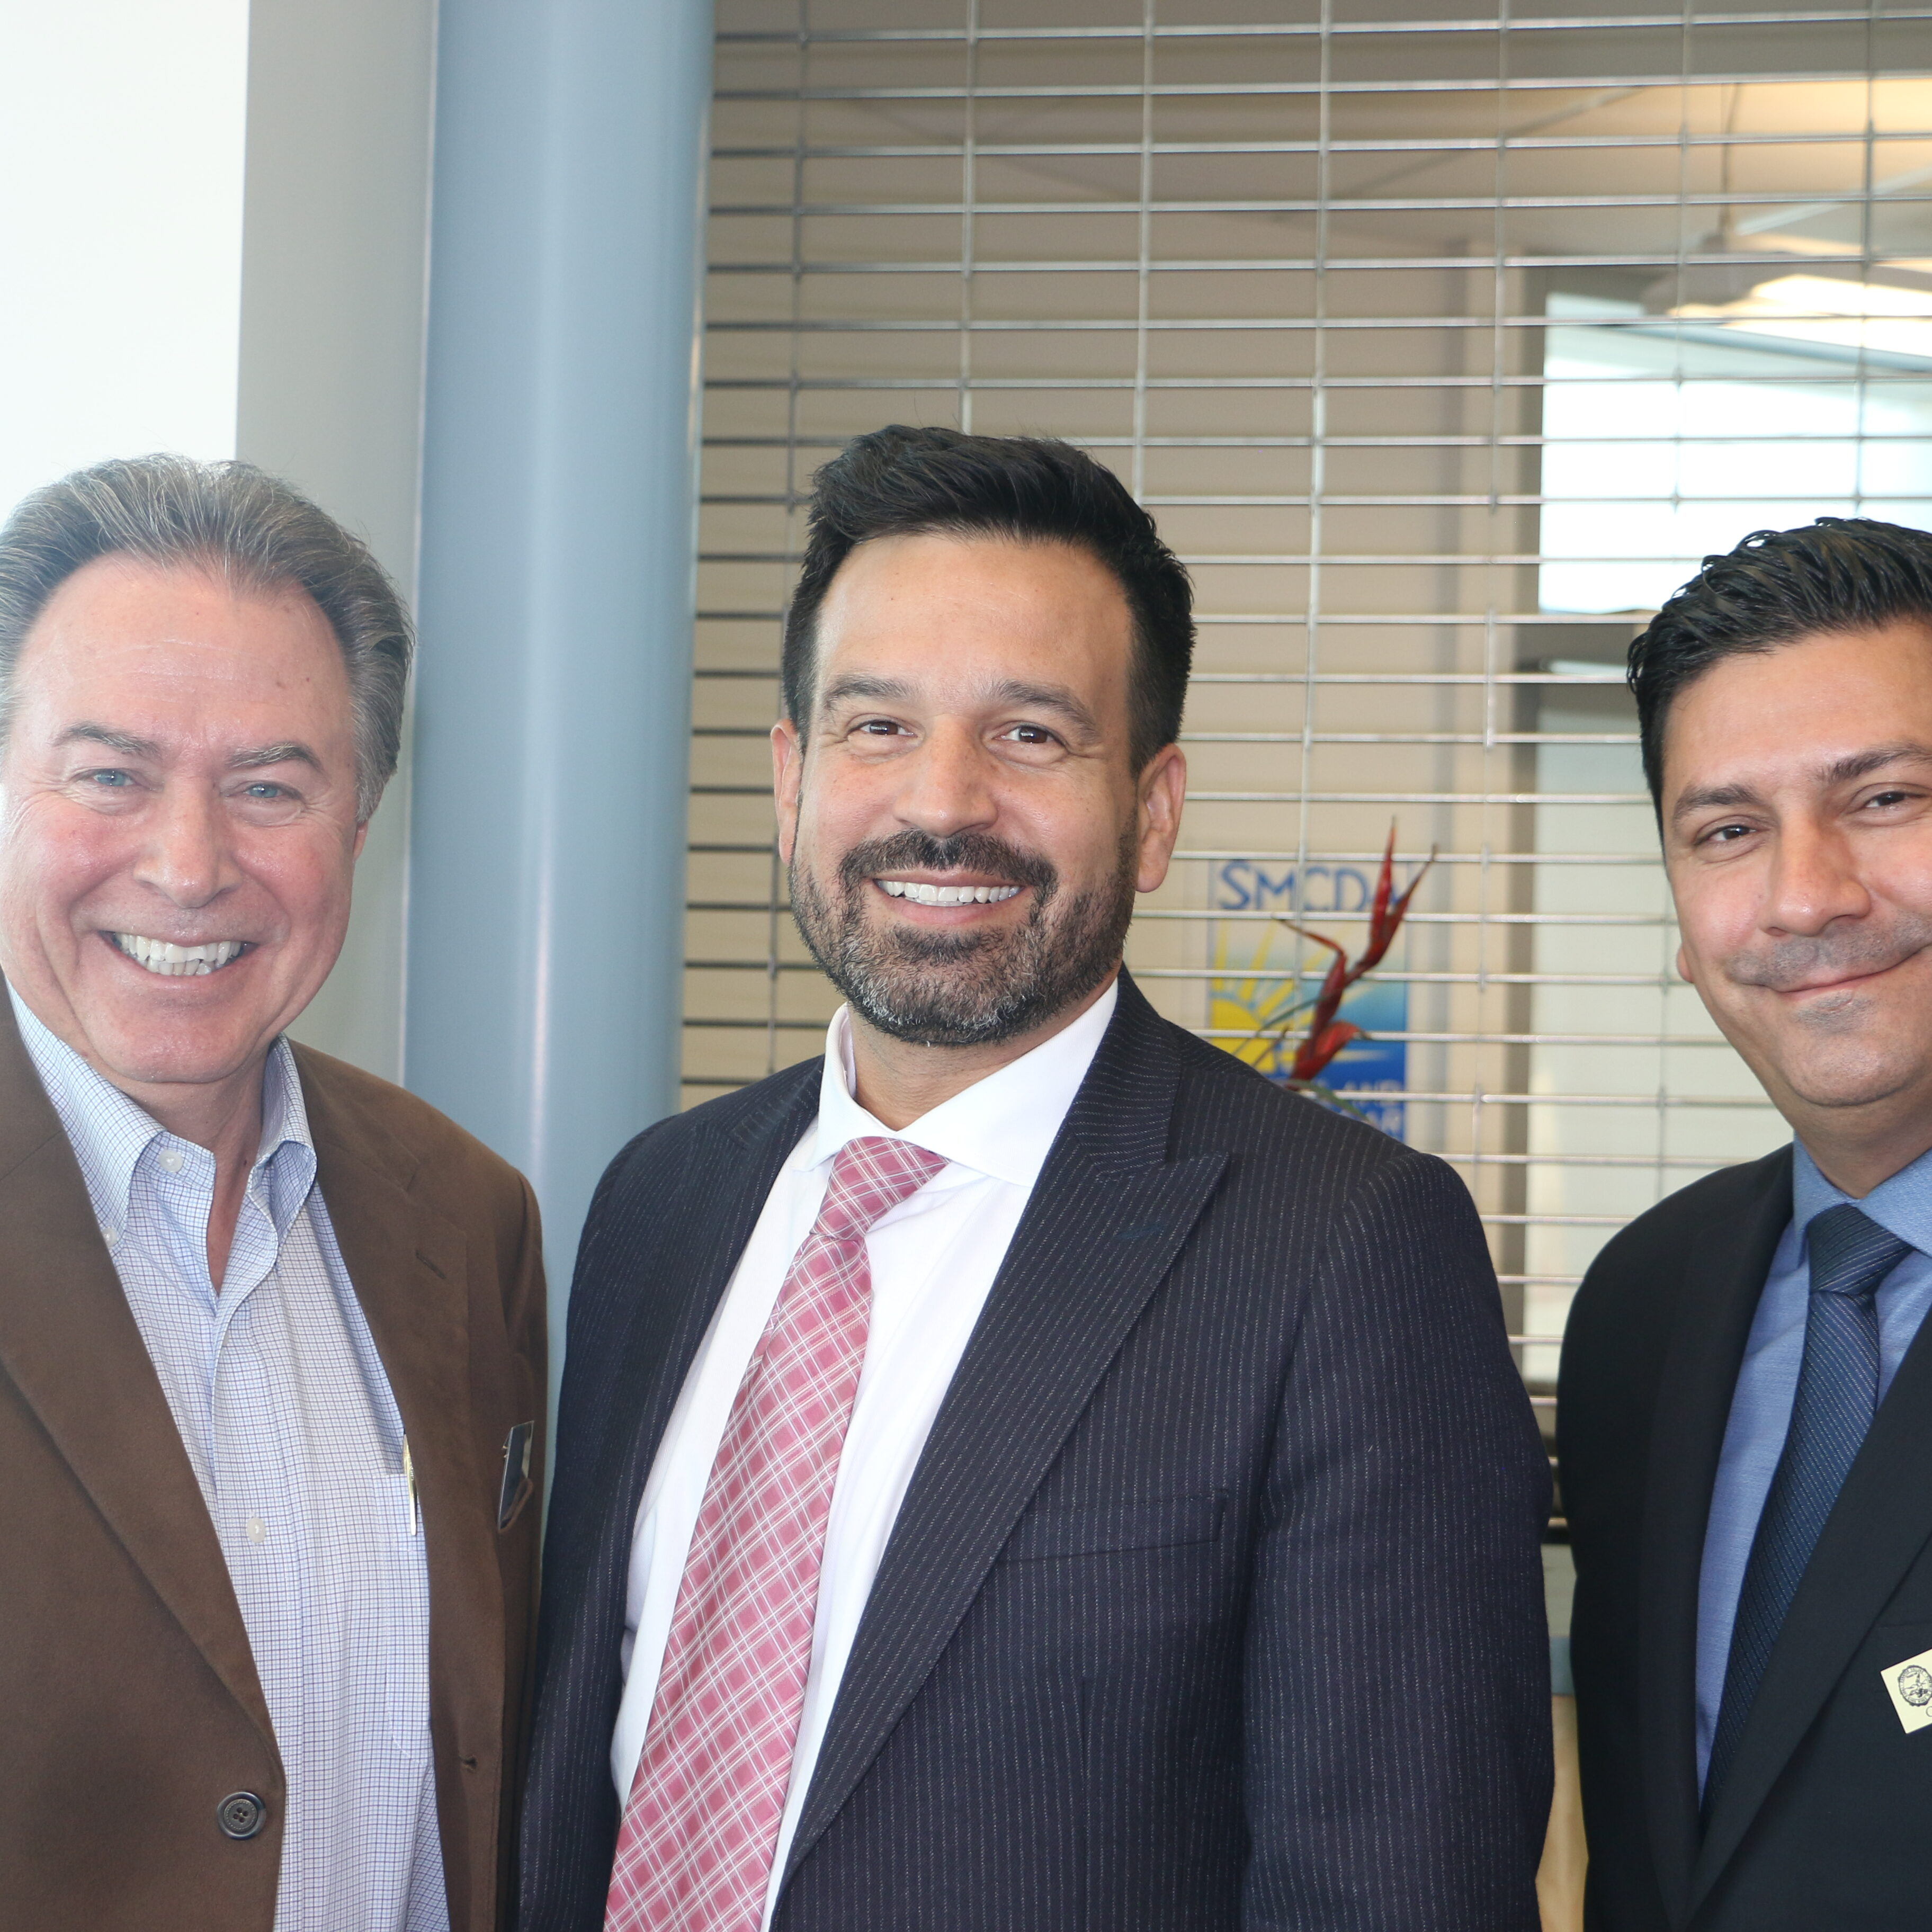 Steve Richardson (Former Executive Director of the Cerritos College Foundation, Cerritos College President, Dr. Jose Fierro, and Felipe Lopez (VP of Business Services and Assistant Superintendent at Cerritos College